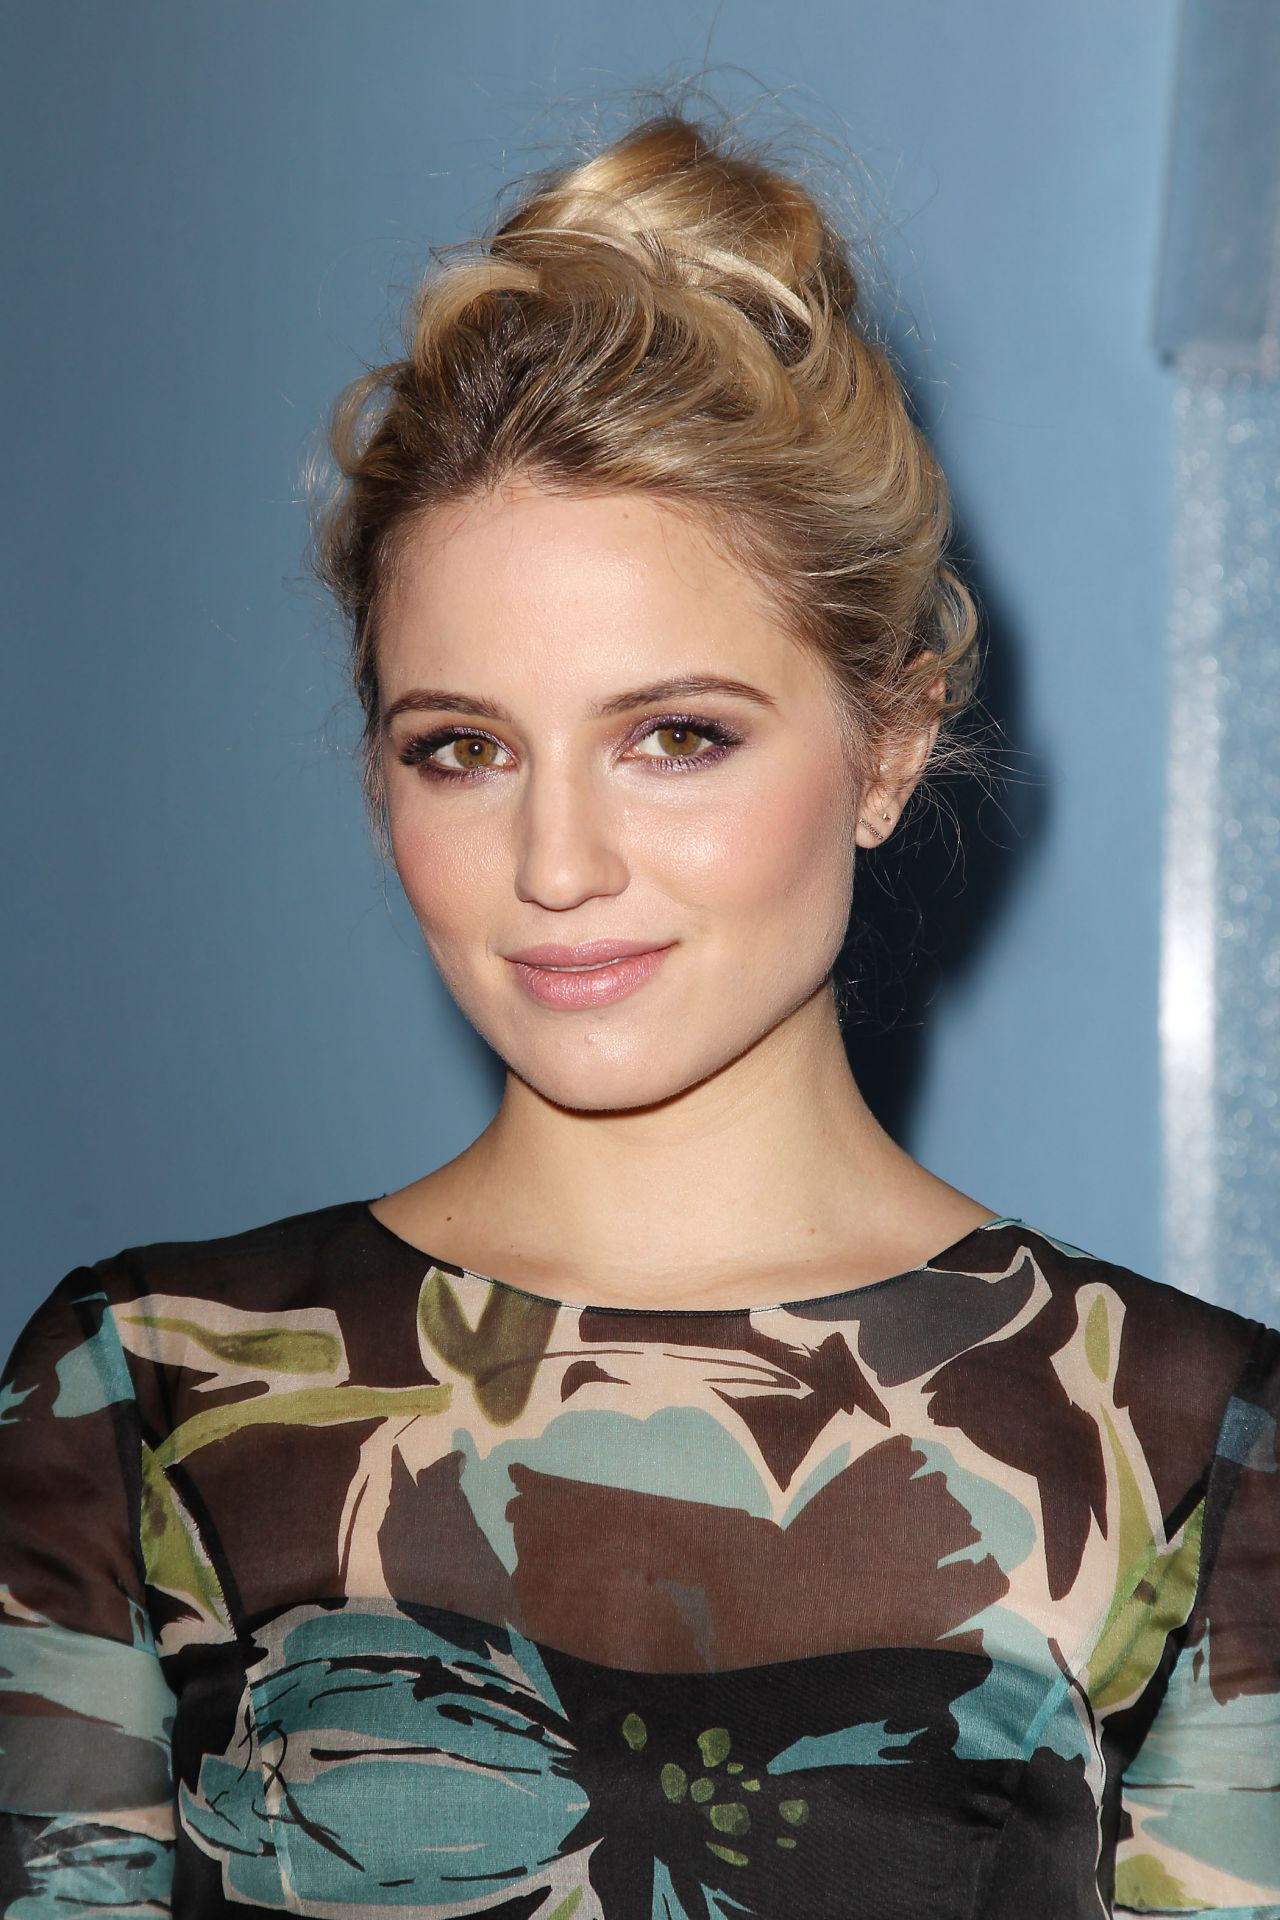 Dianna Agron - Carolina Herrera Fashion Show in New York City, Feb. 2015